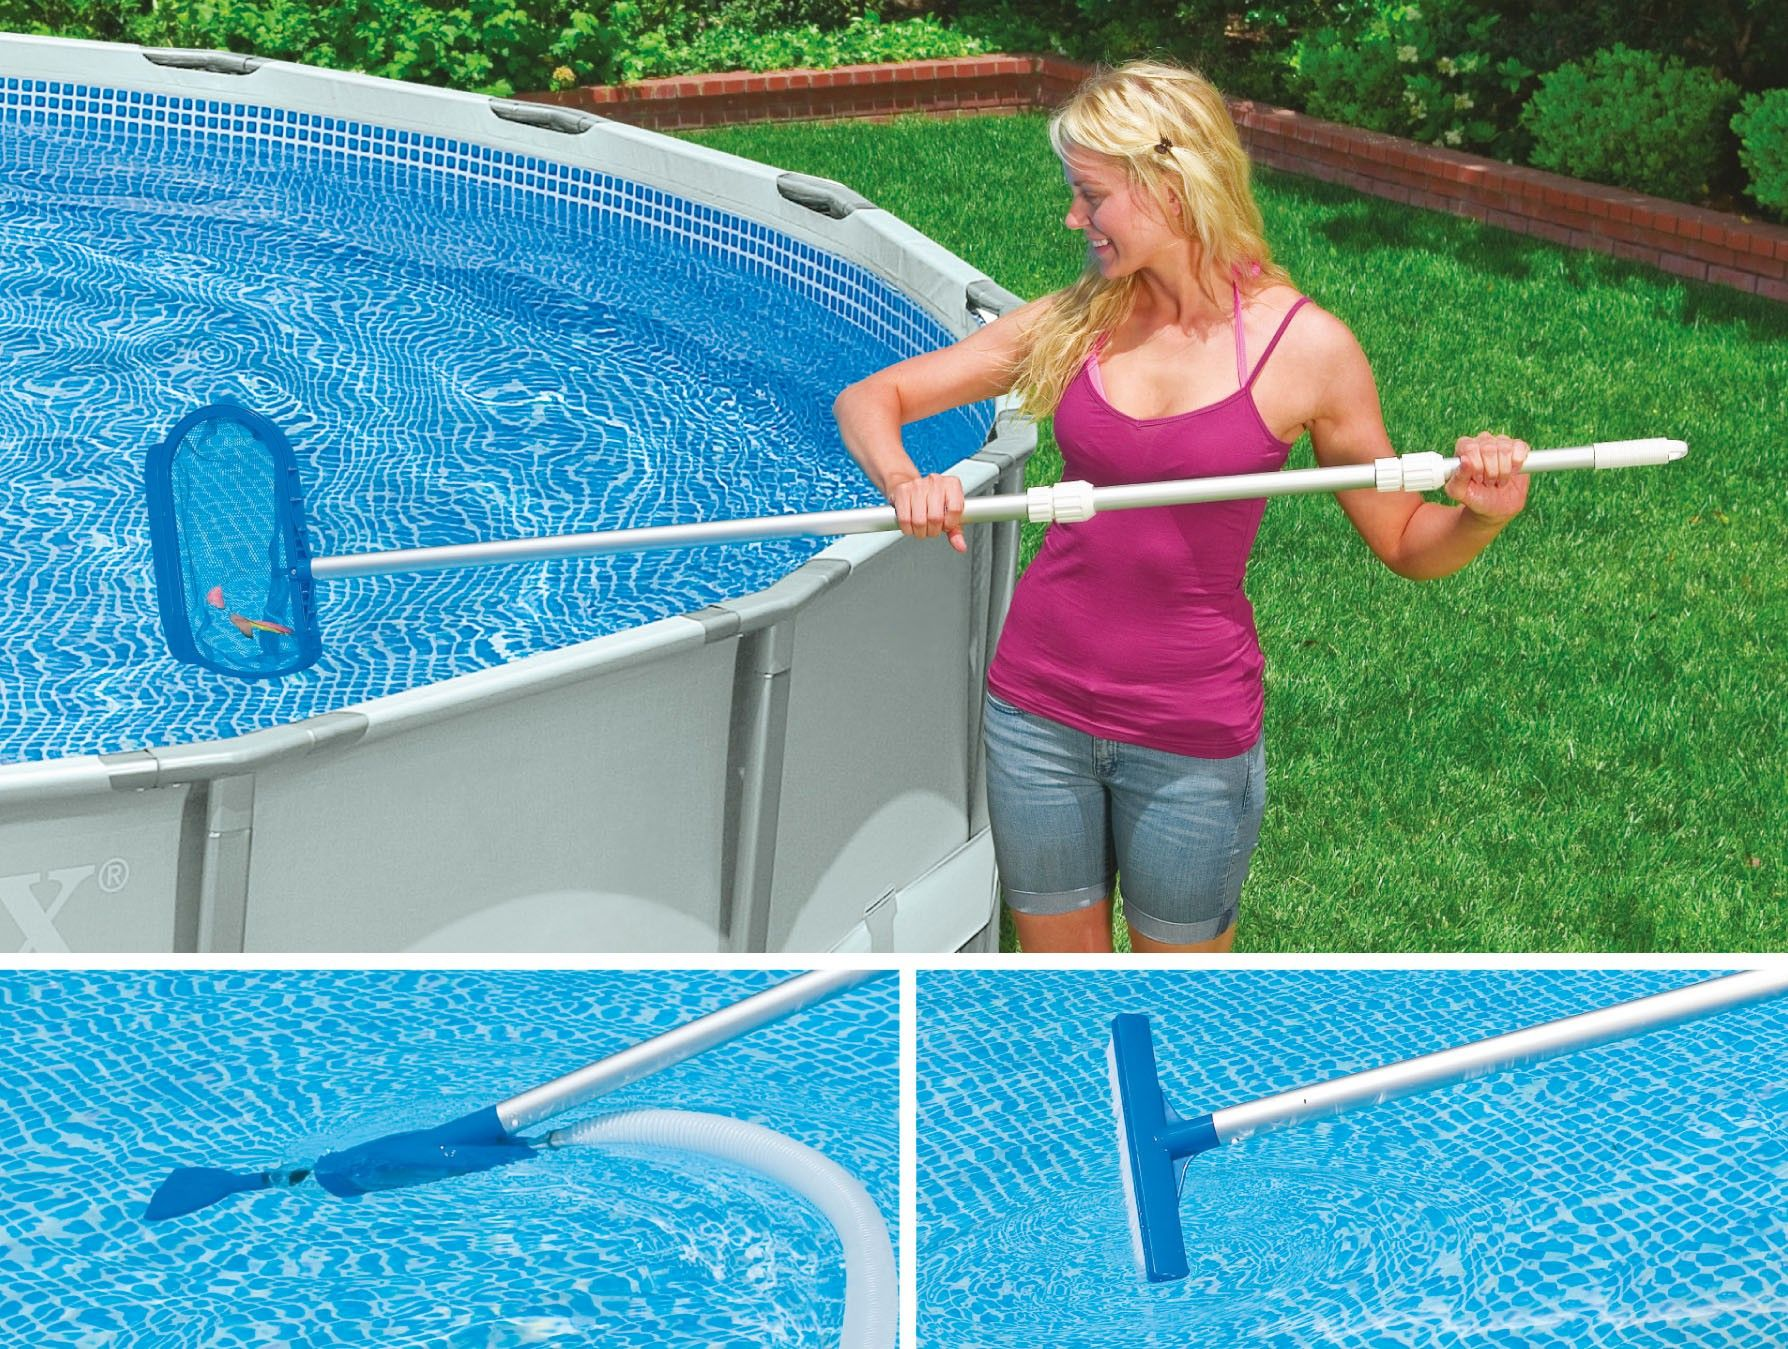 Pool Reinigungsset Video Intex Pool Reinigungsset Skimmer Mit Saugerkopf Intex